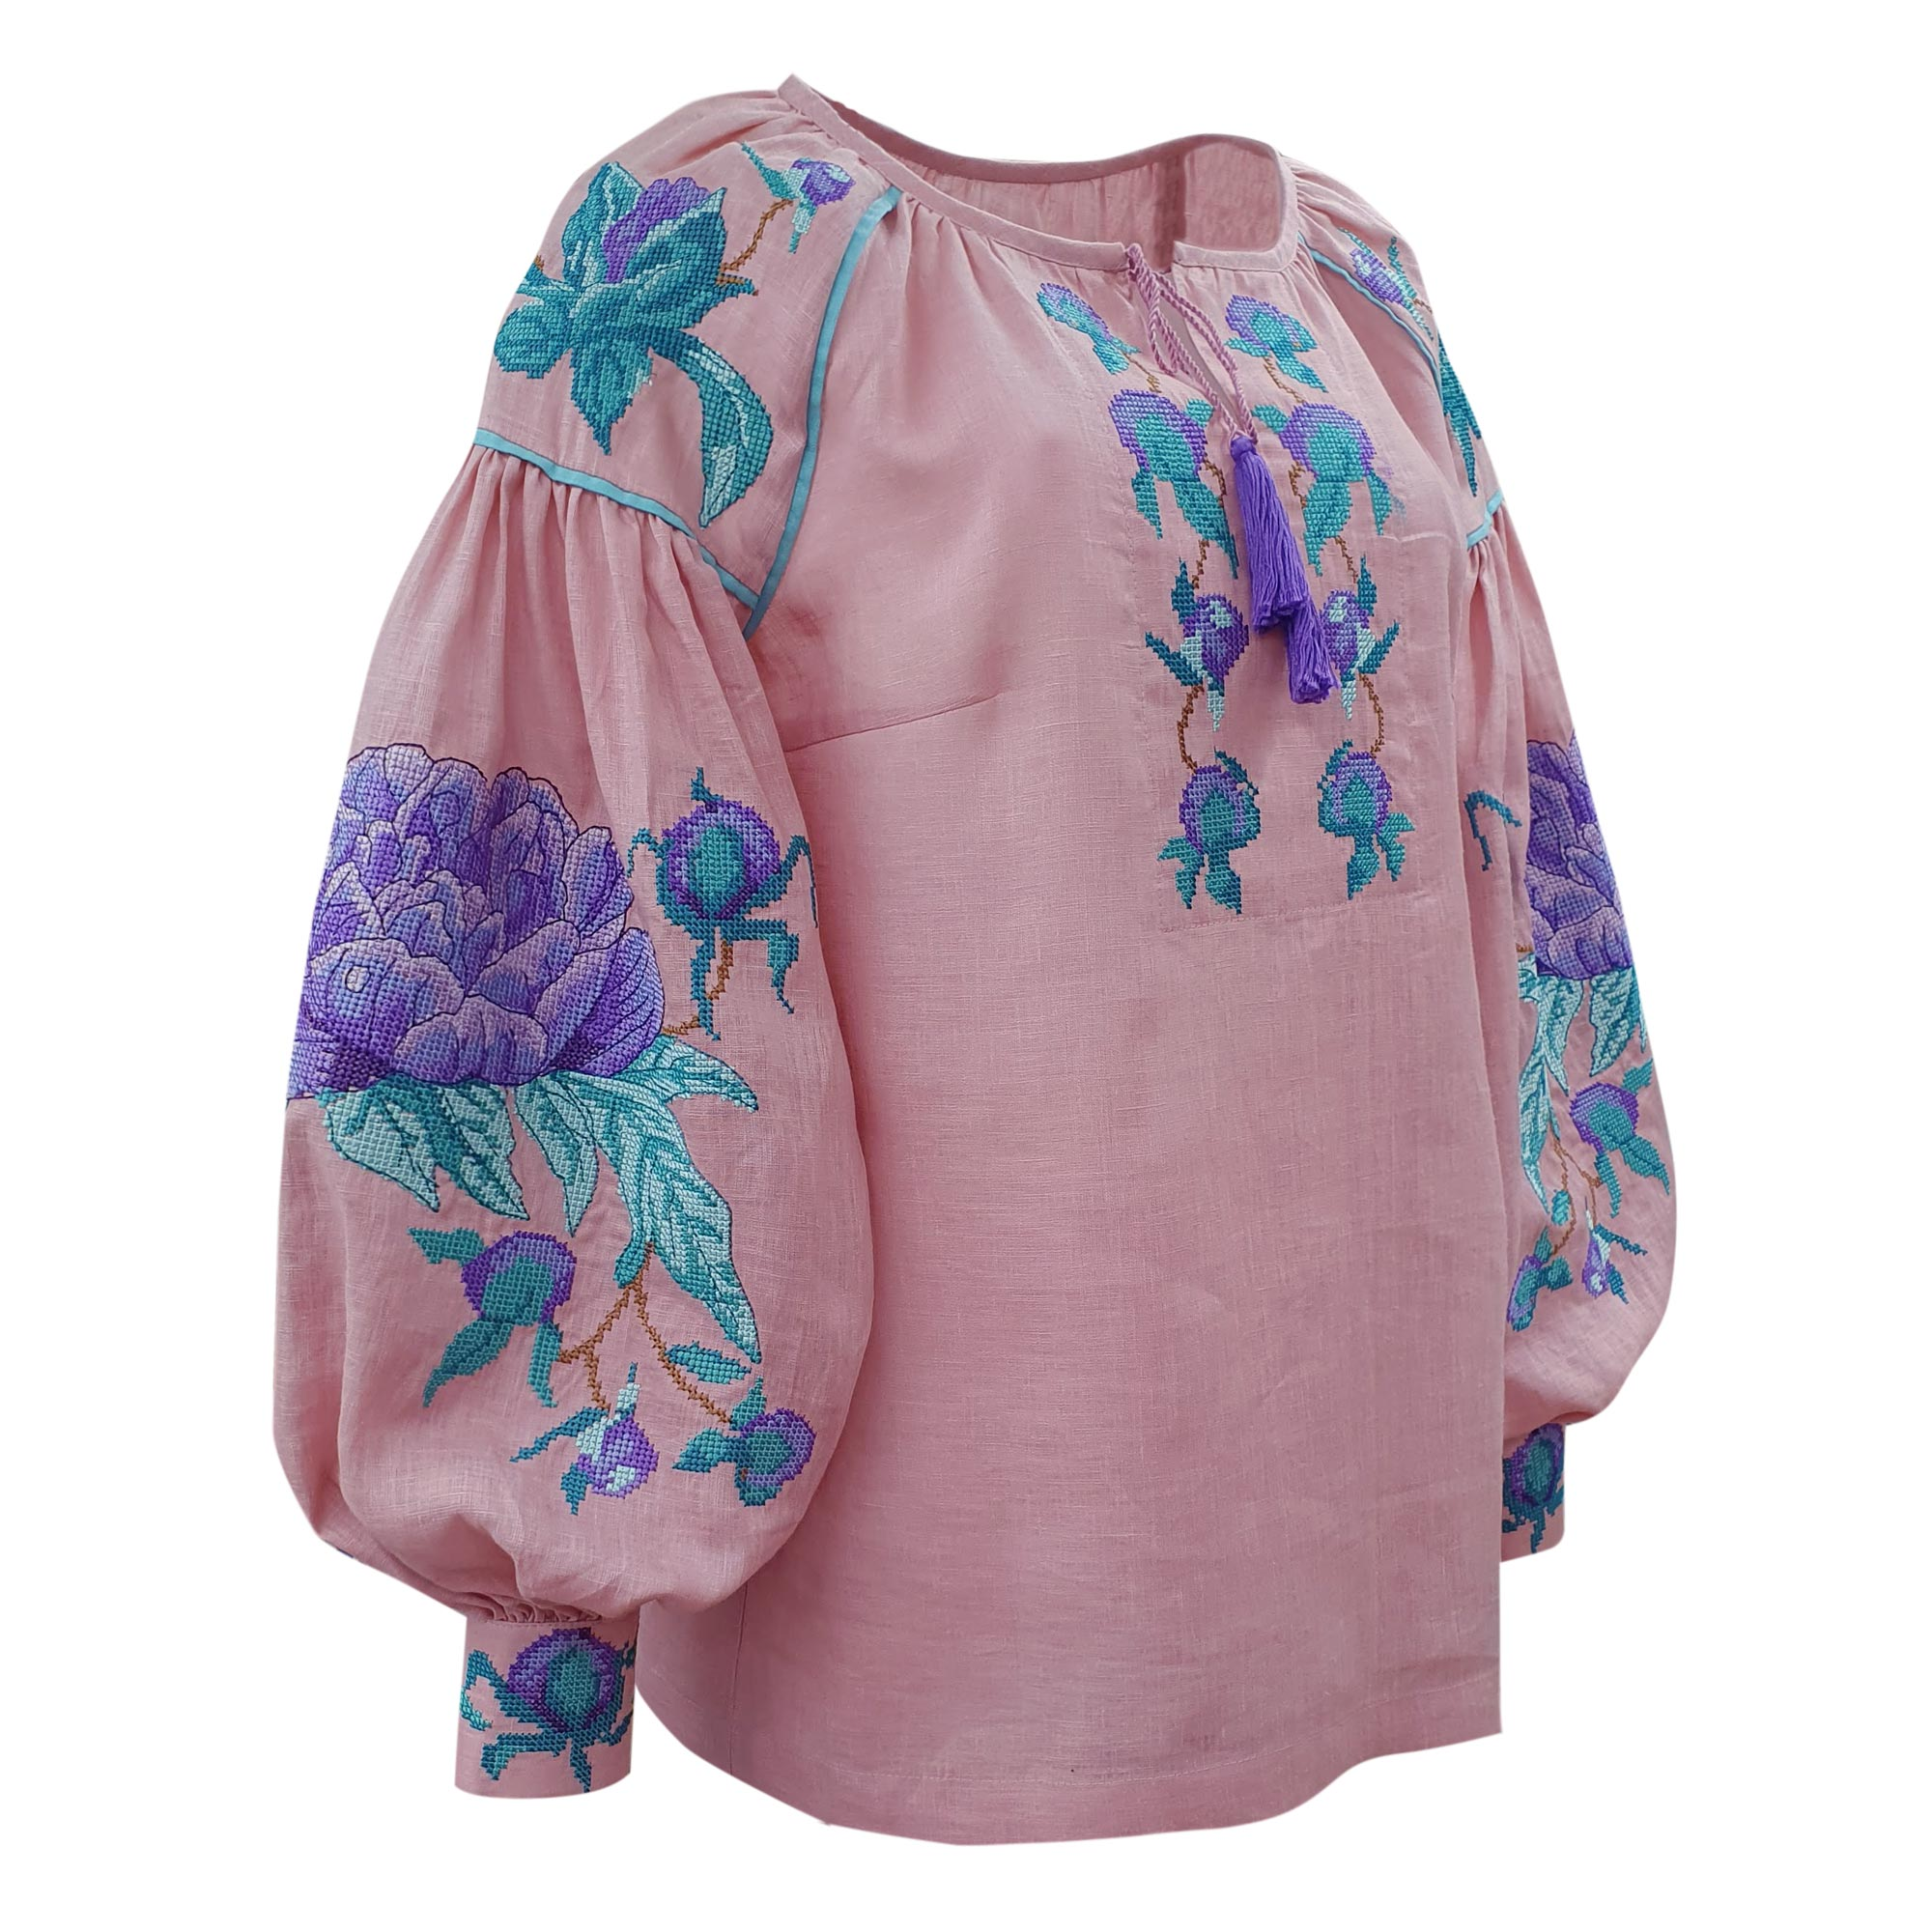 Exquisite embroidered shirt